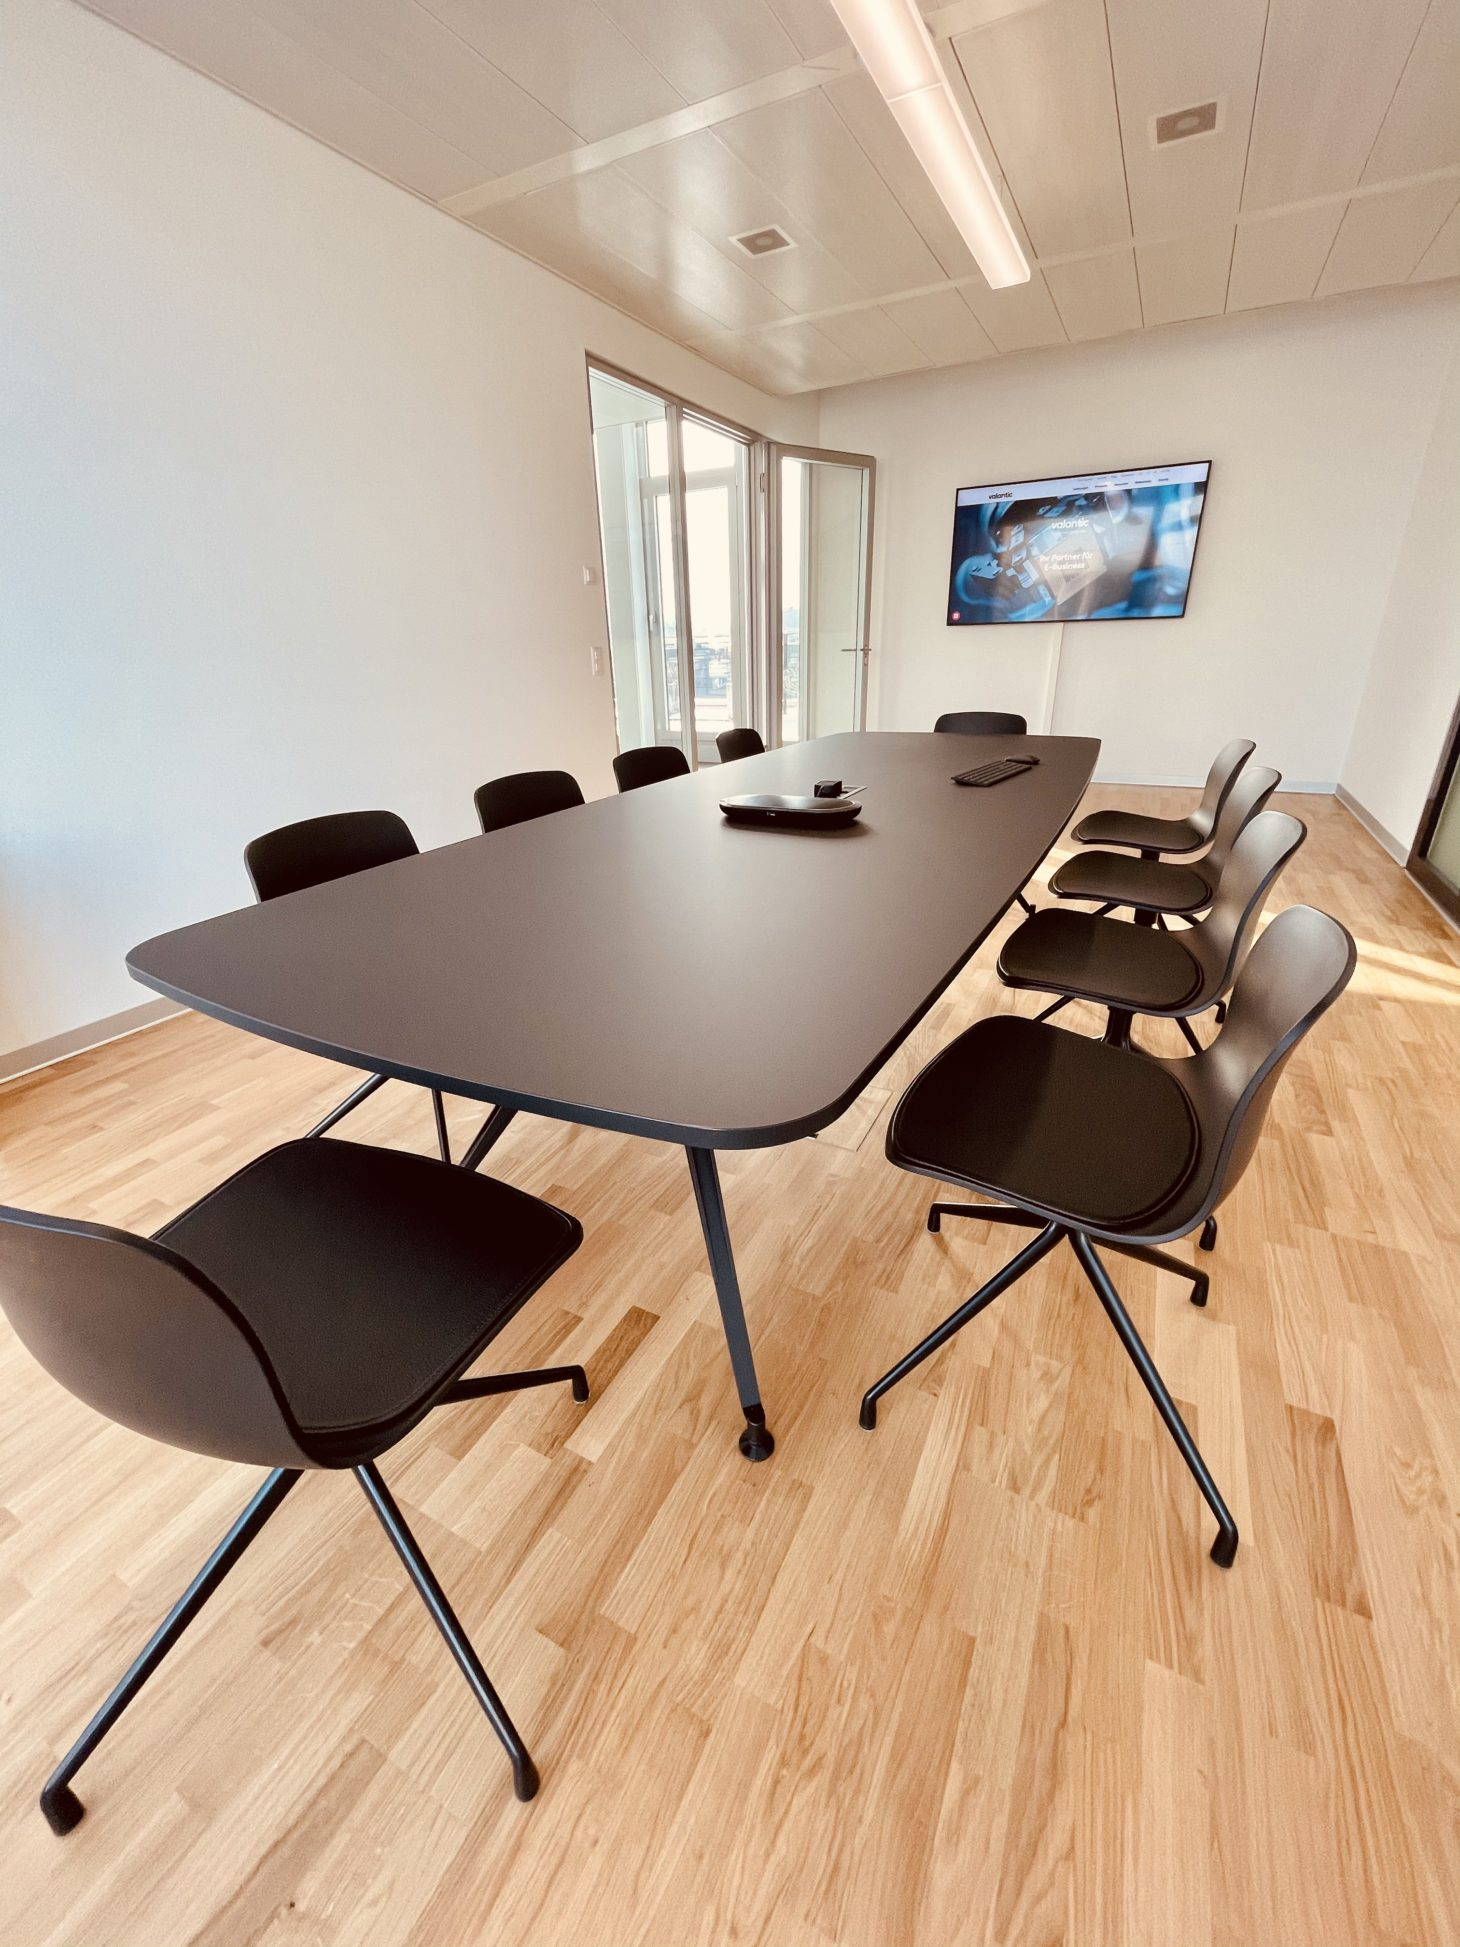 Image of the conference room of the valantic branch in Zurich